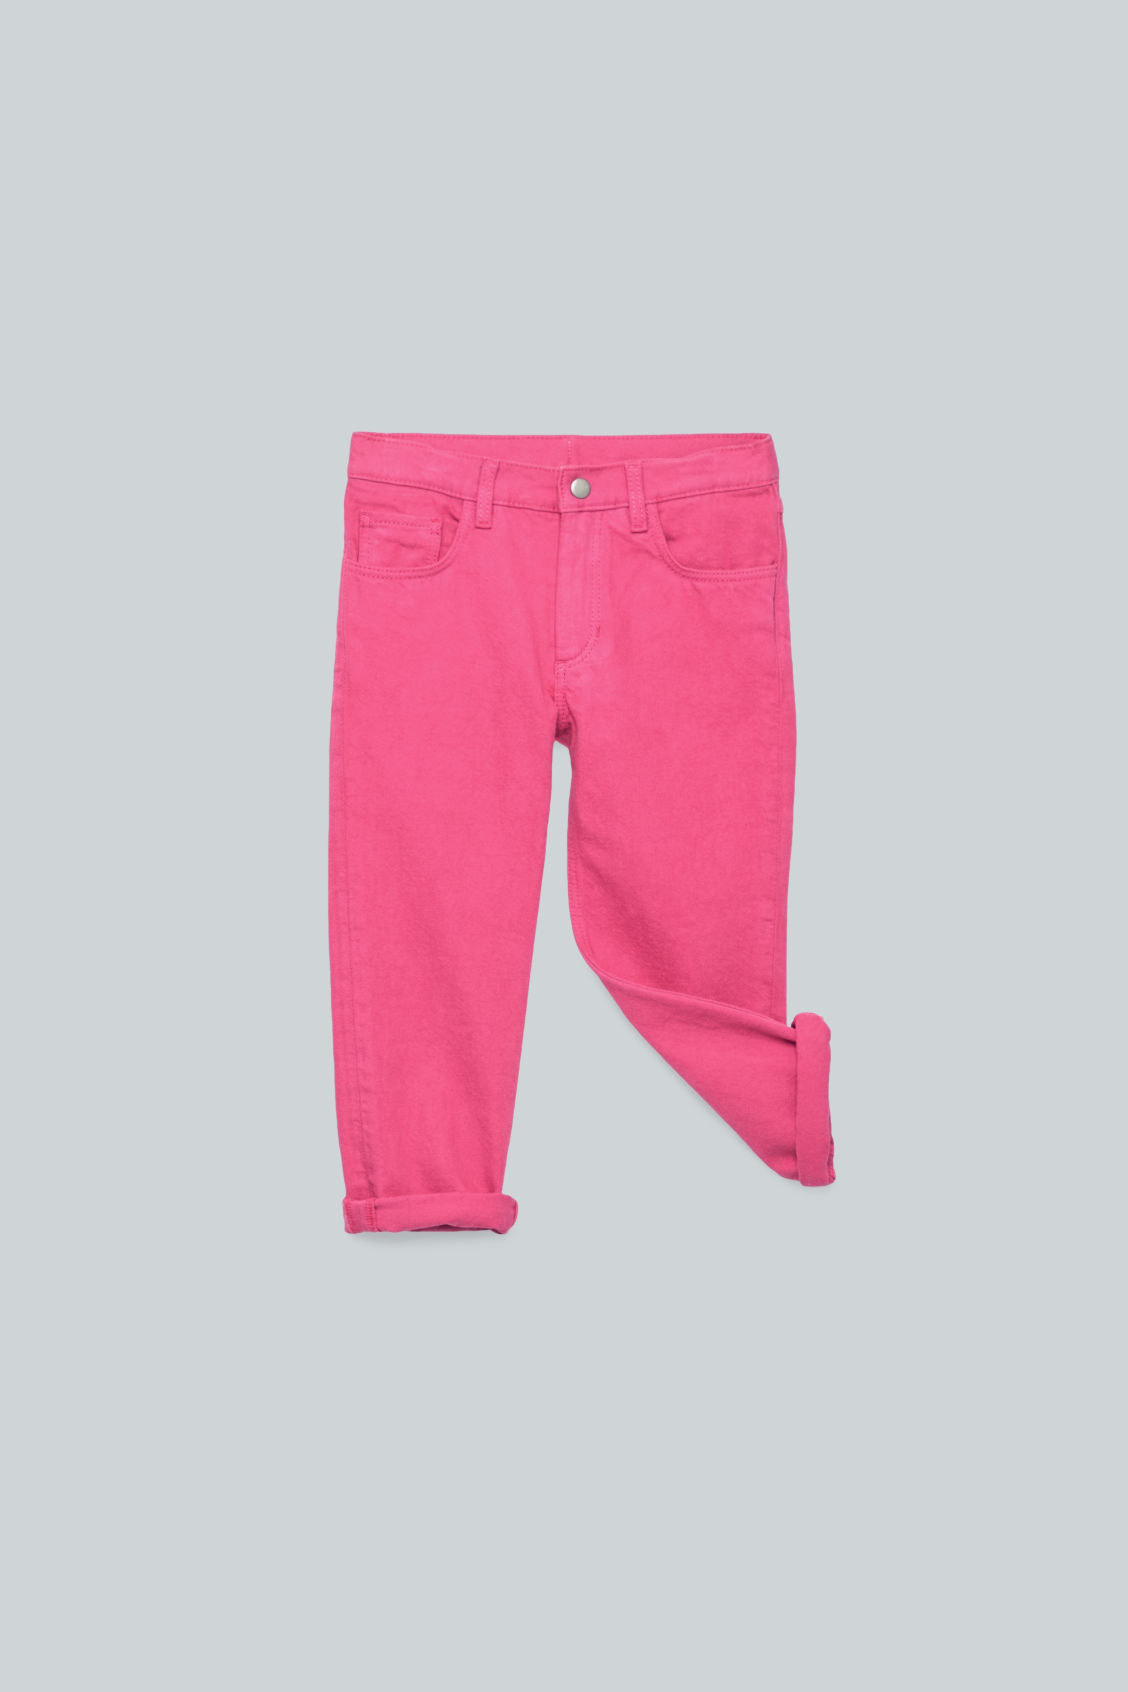 Detailed image of Cos straight-leg denim jeans  in pink